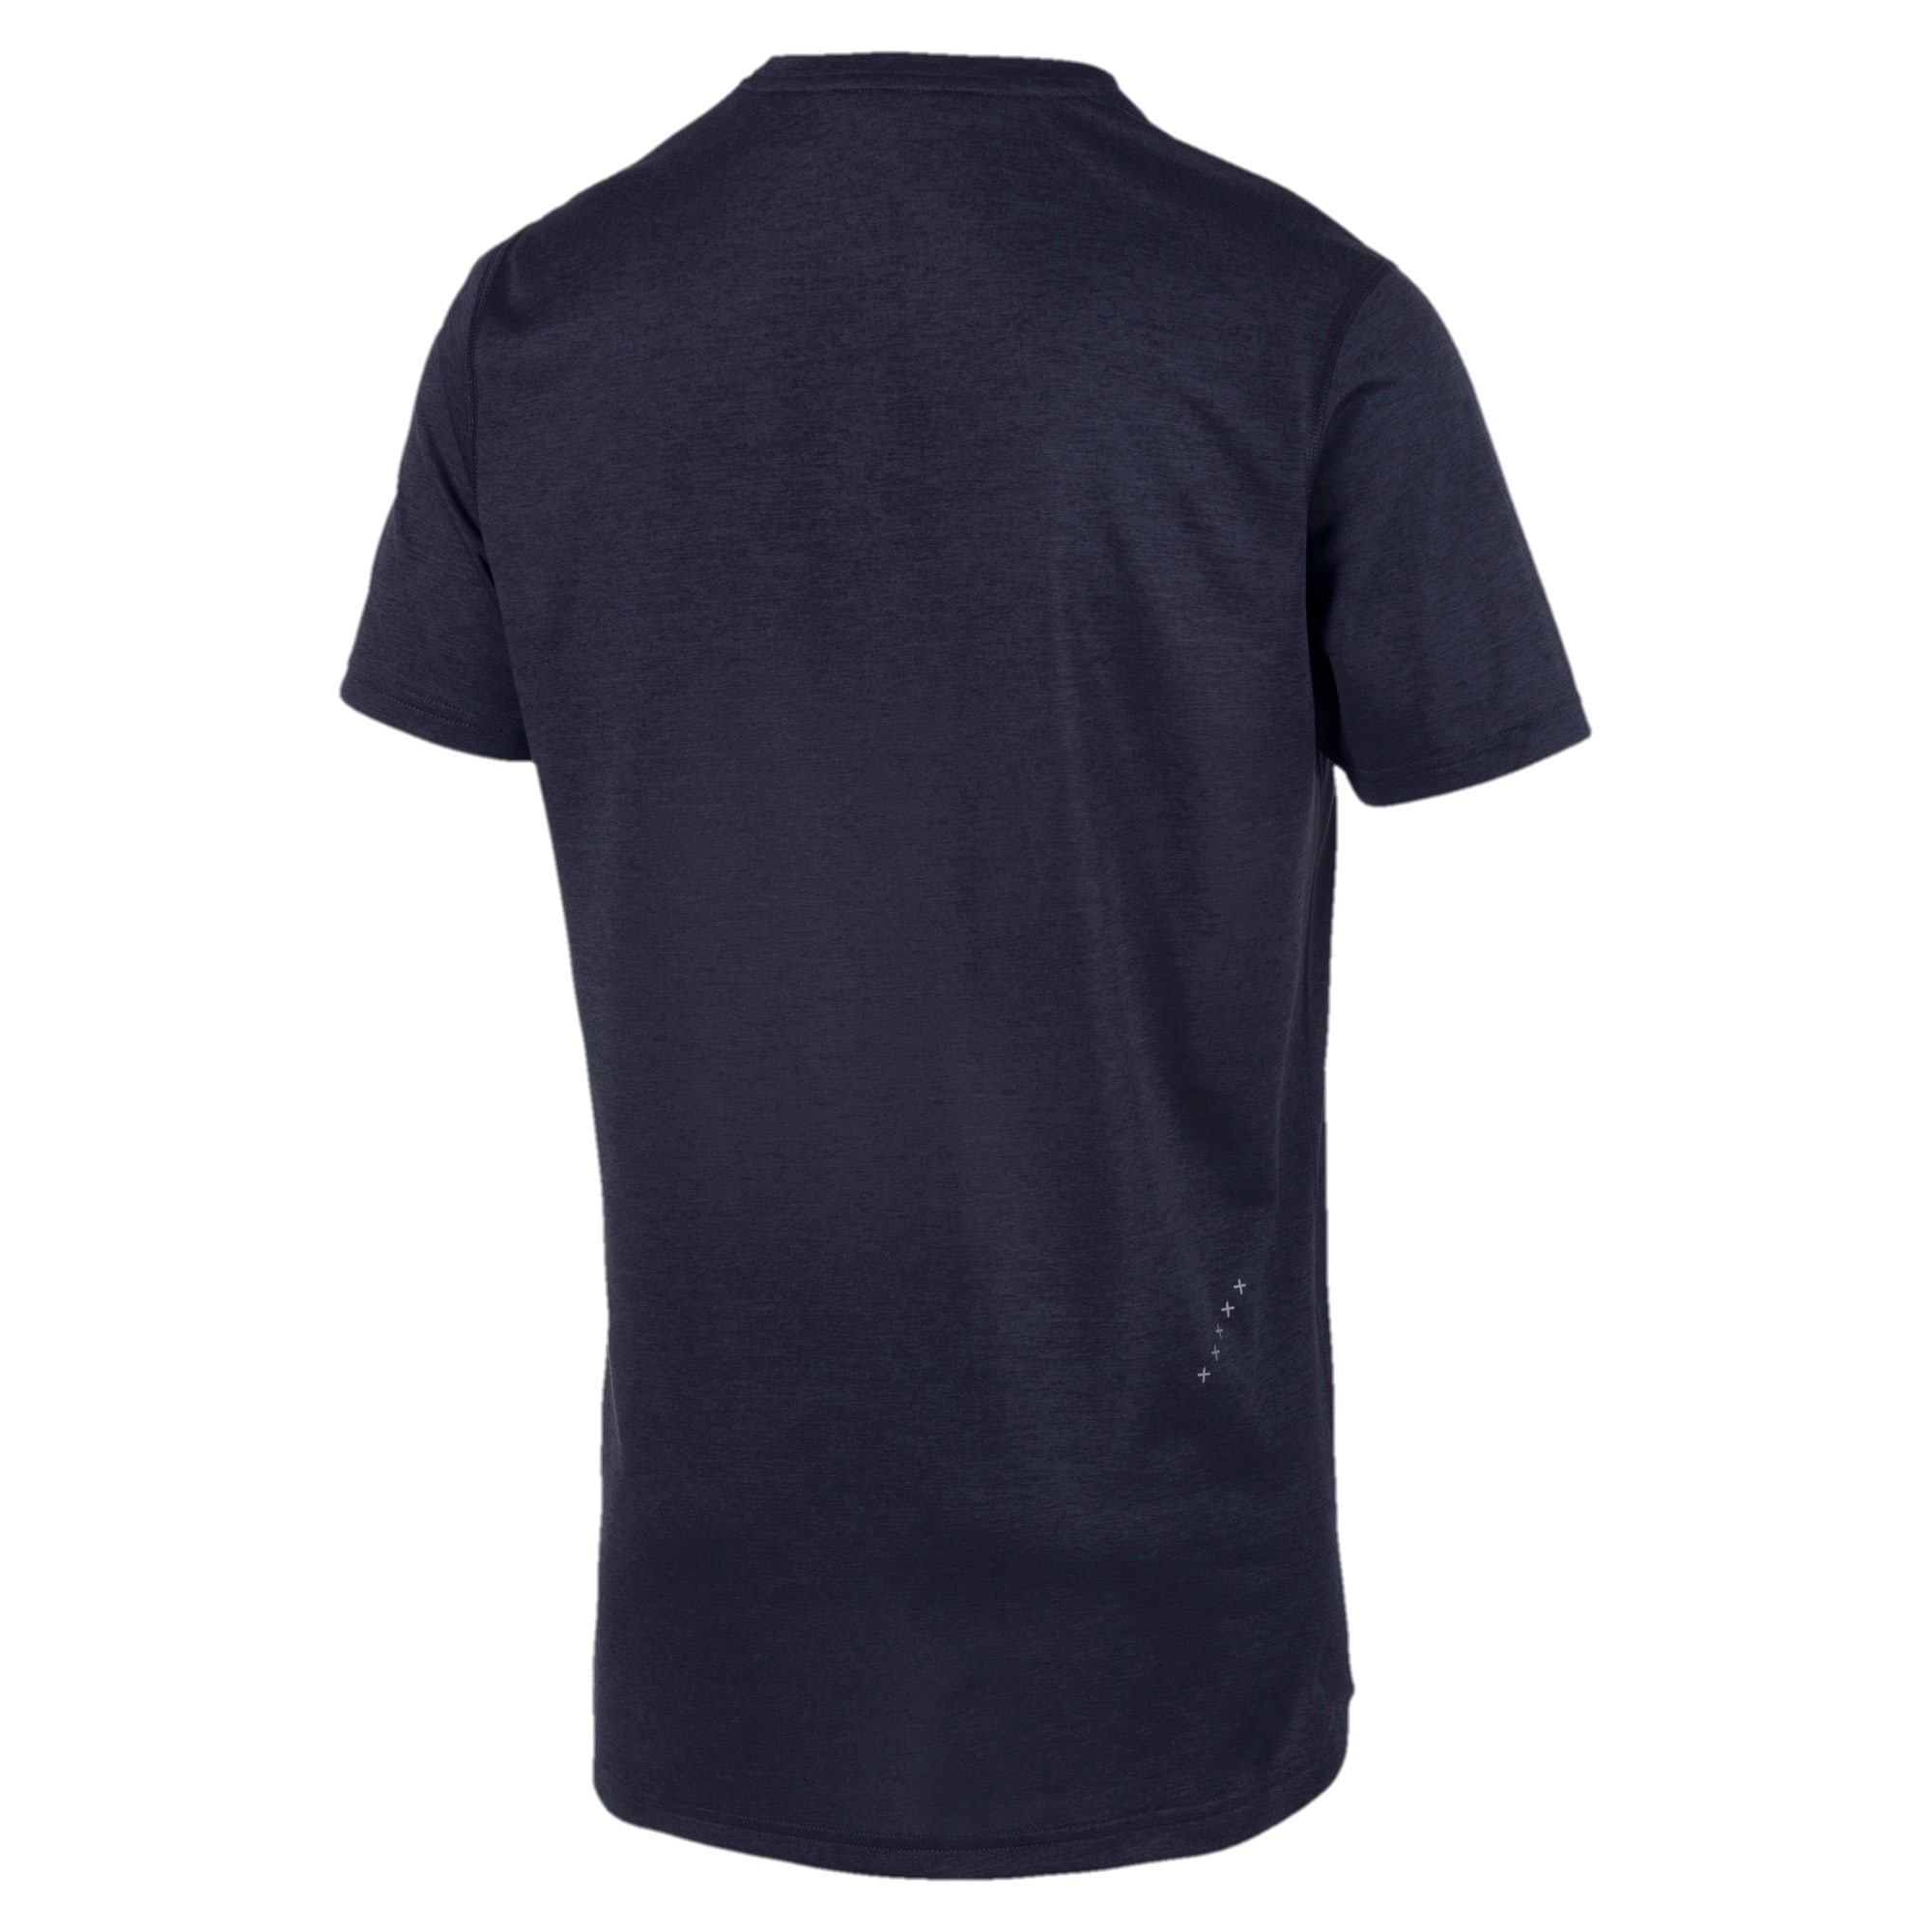 Thumbnail 5 of IGNITE Heather Short Sleeve Men's Running Tee, Peacoat Heather, medium-IND